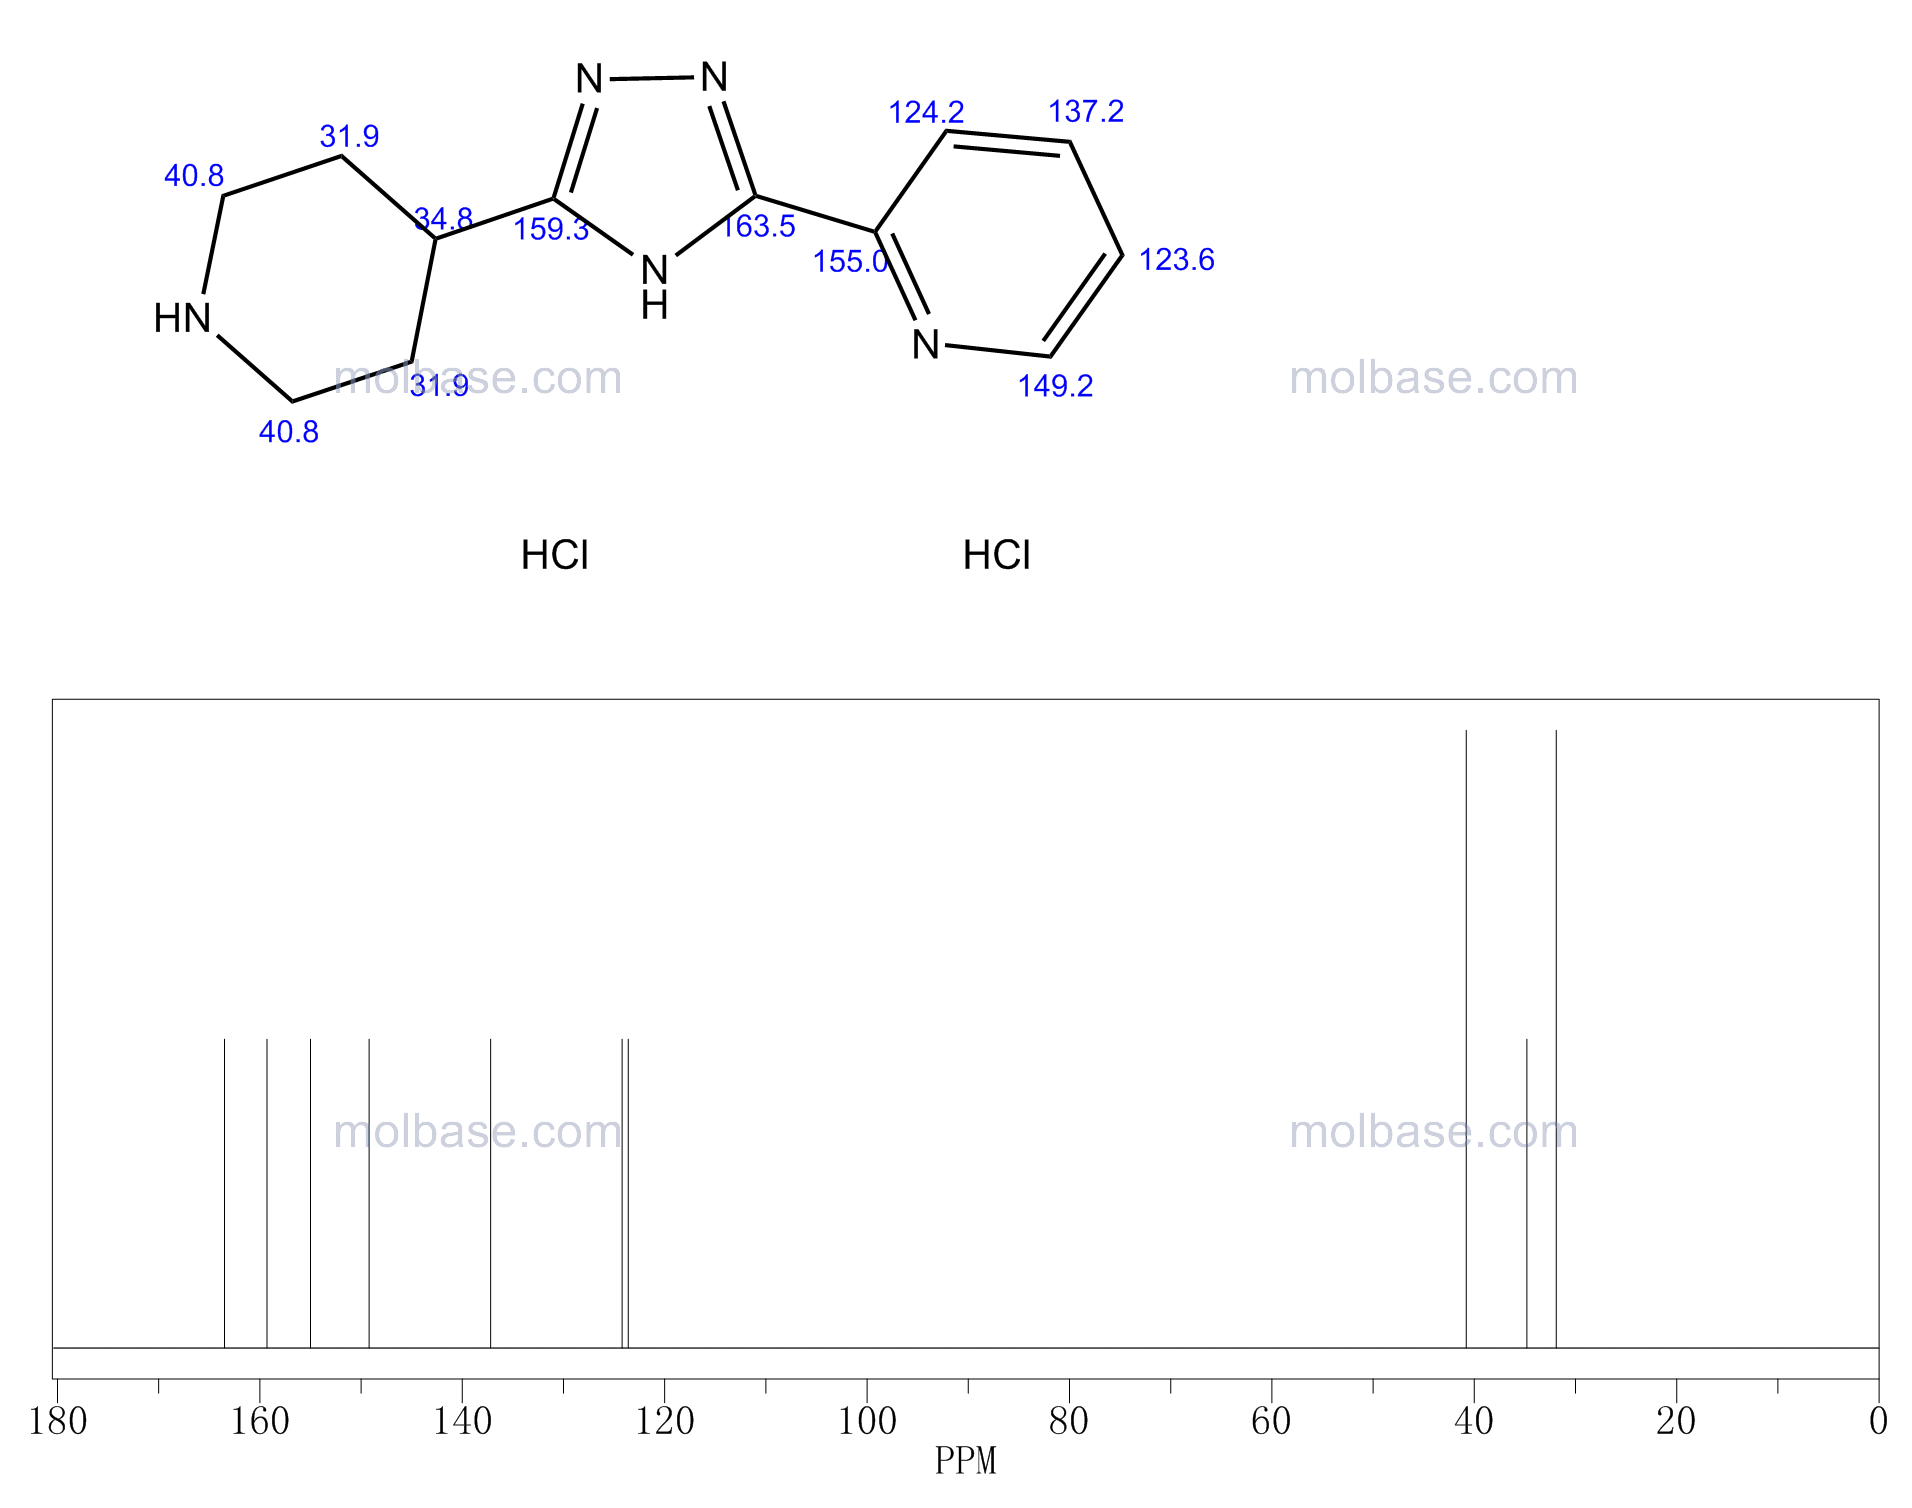 2-(5-Piperidin-4-yl-4H-1,2,4-triazol-3-yl)-pyridine dihydrochloride NMR spectra analysis, Chemical CAS NO. 868280-58-4 NMR spectral analysis, 2-(5-Piperidin-4-yl-4H-1,2,4-triazol-3-yl)-pyridine dihydrochloride C-NMR spectrum